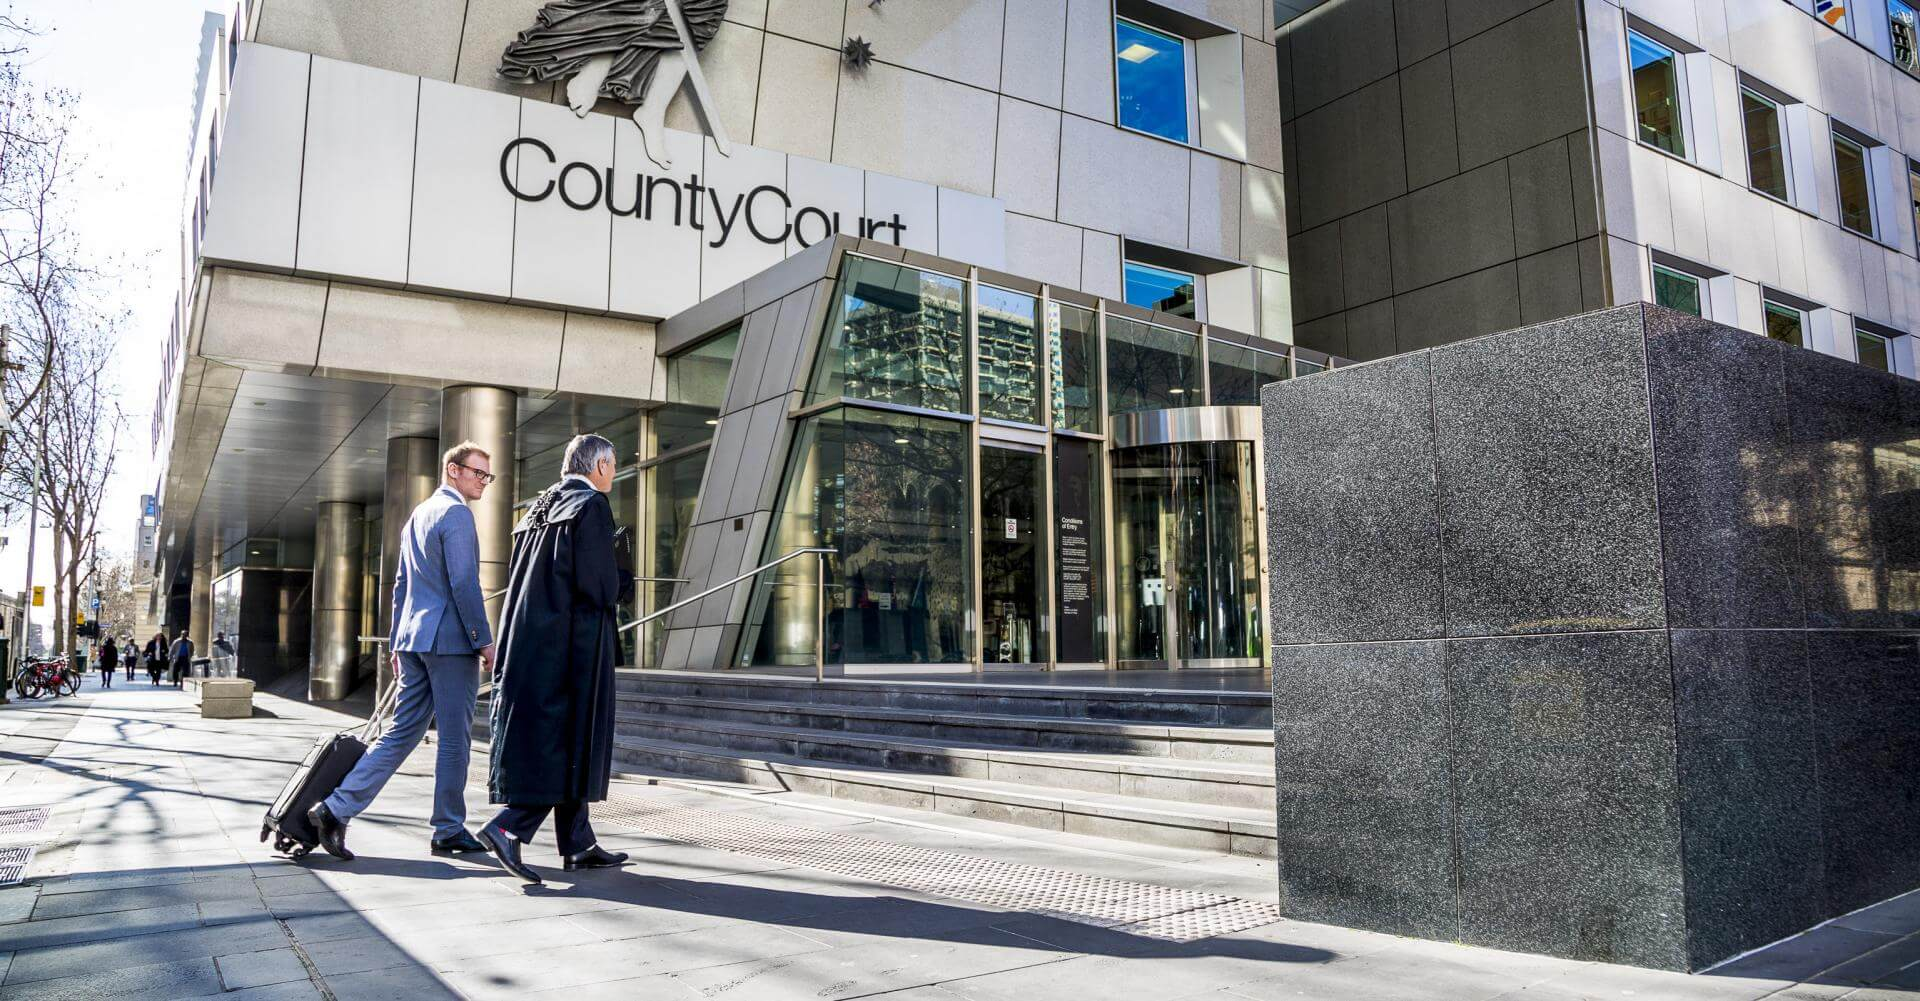 lawyer and barrister walking into courtroom building in Melbourne for branding photography